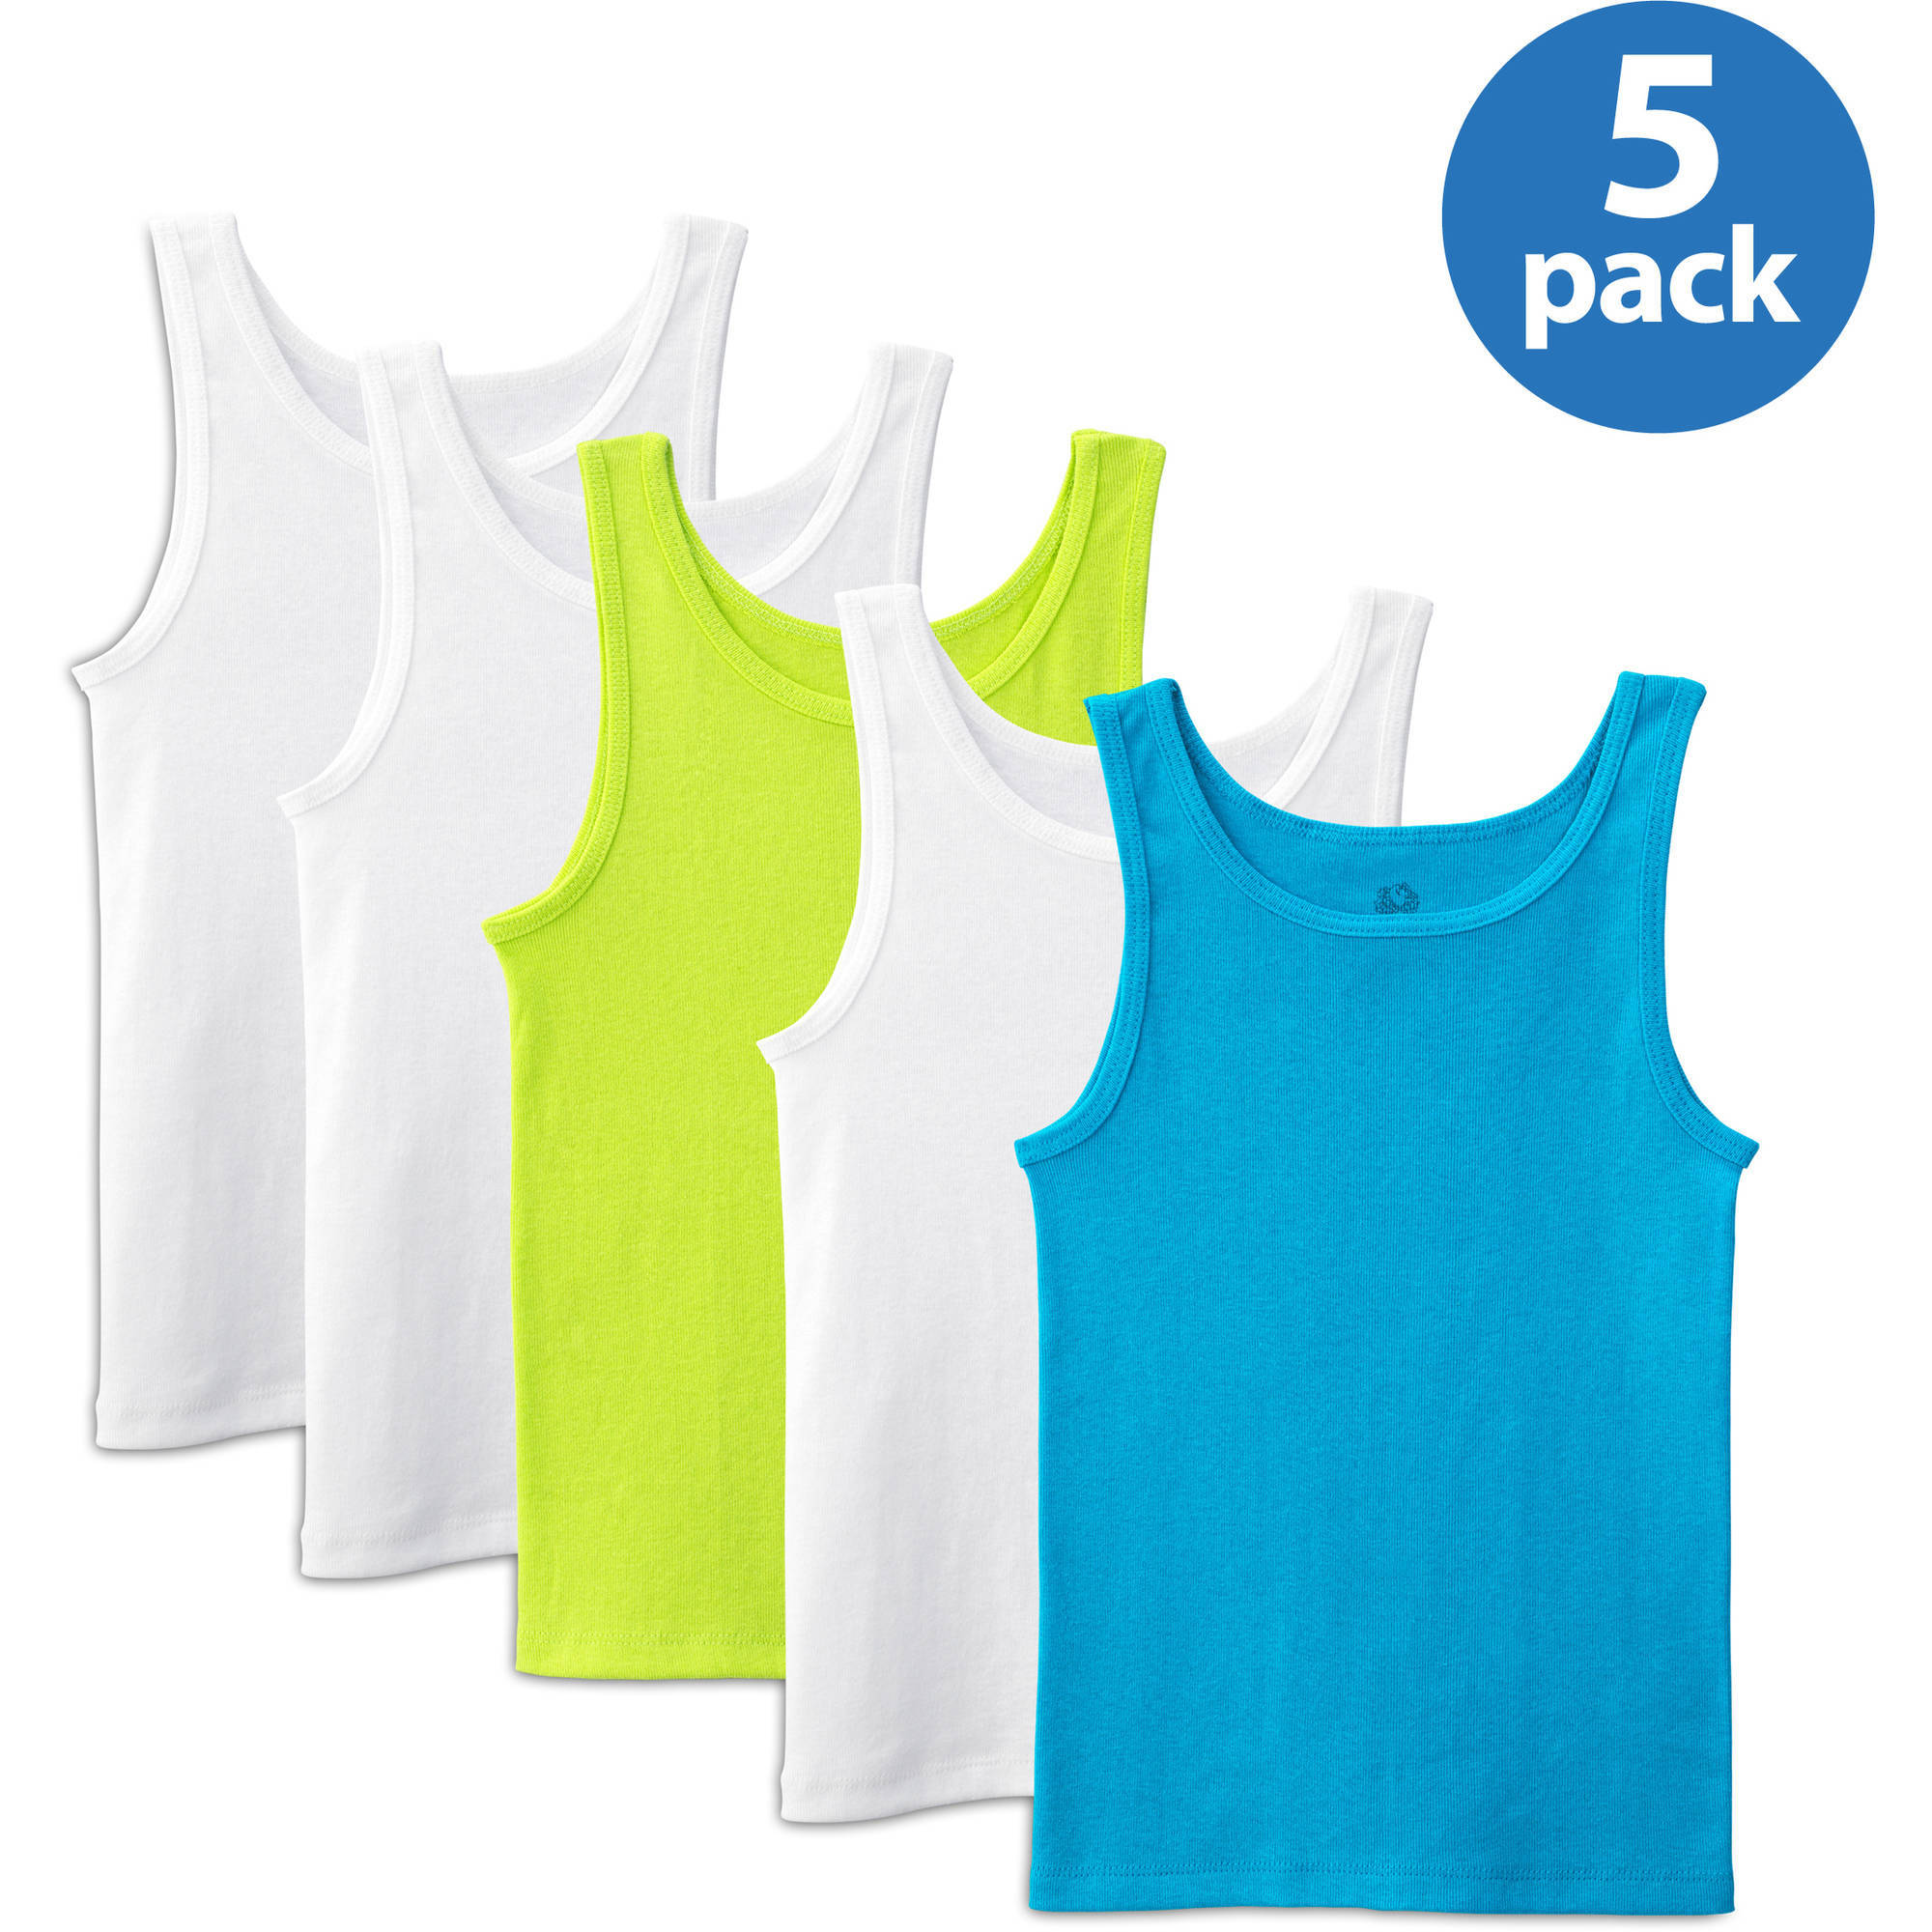 Fruit of the Loom Girls' 100% Cotton Solid Tank Tops, 5-Pack